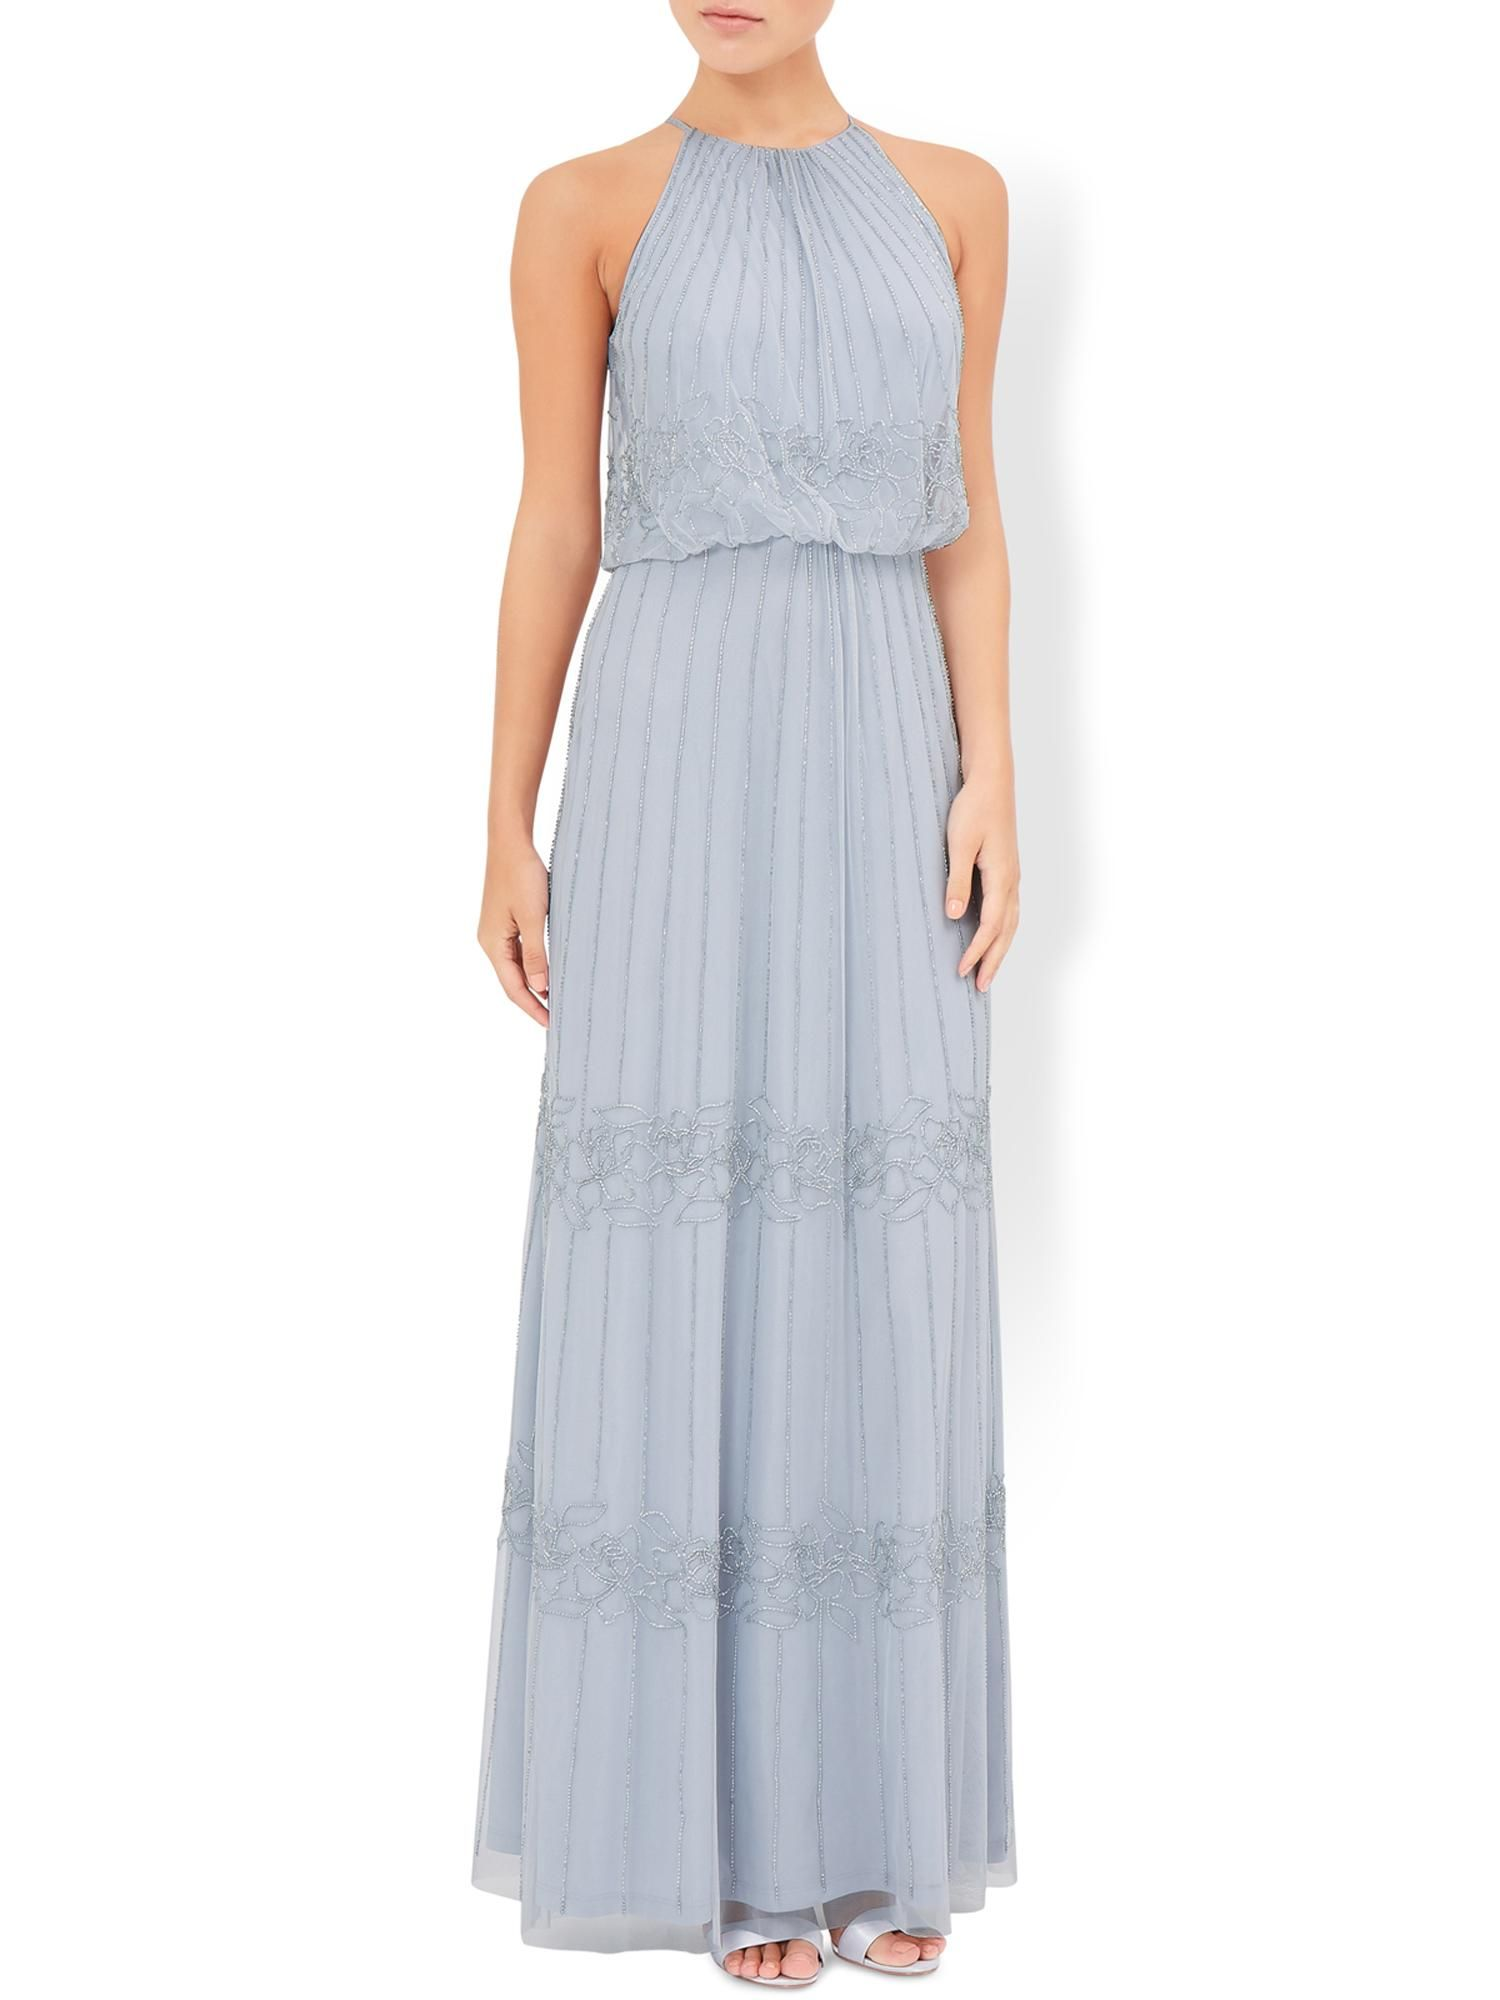 Monsoon Buttercup Maxi Dress | D, Maxis and Dresses